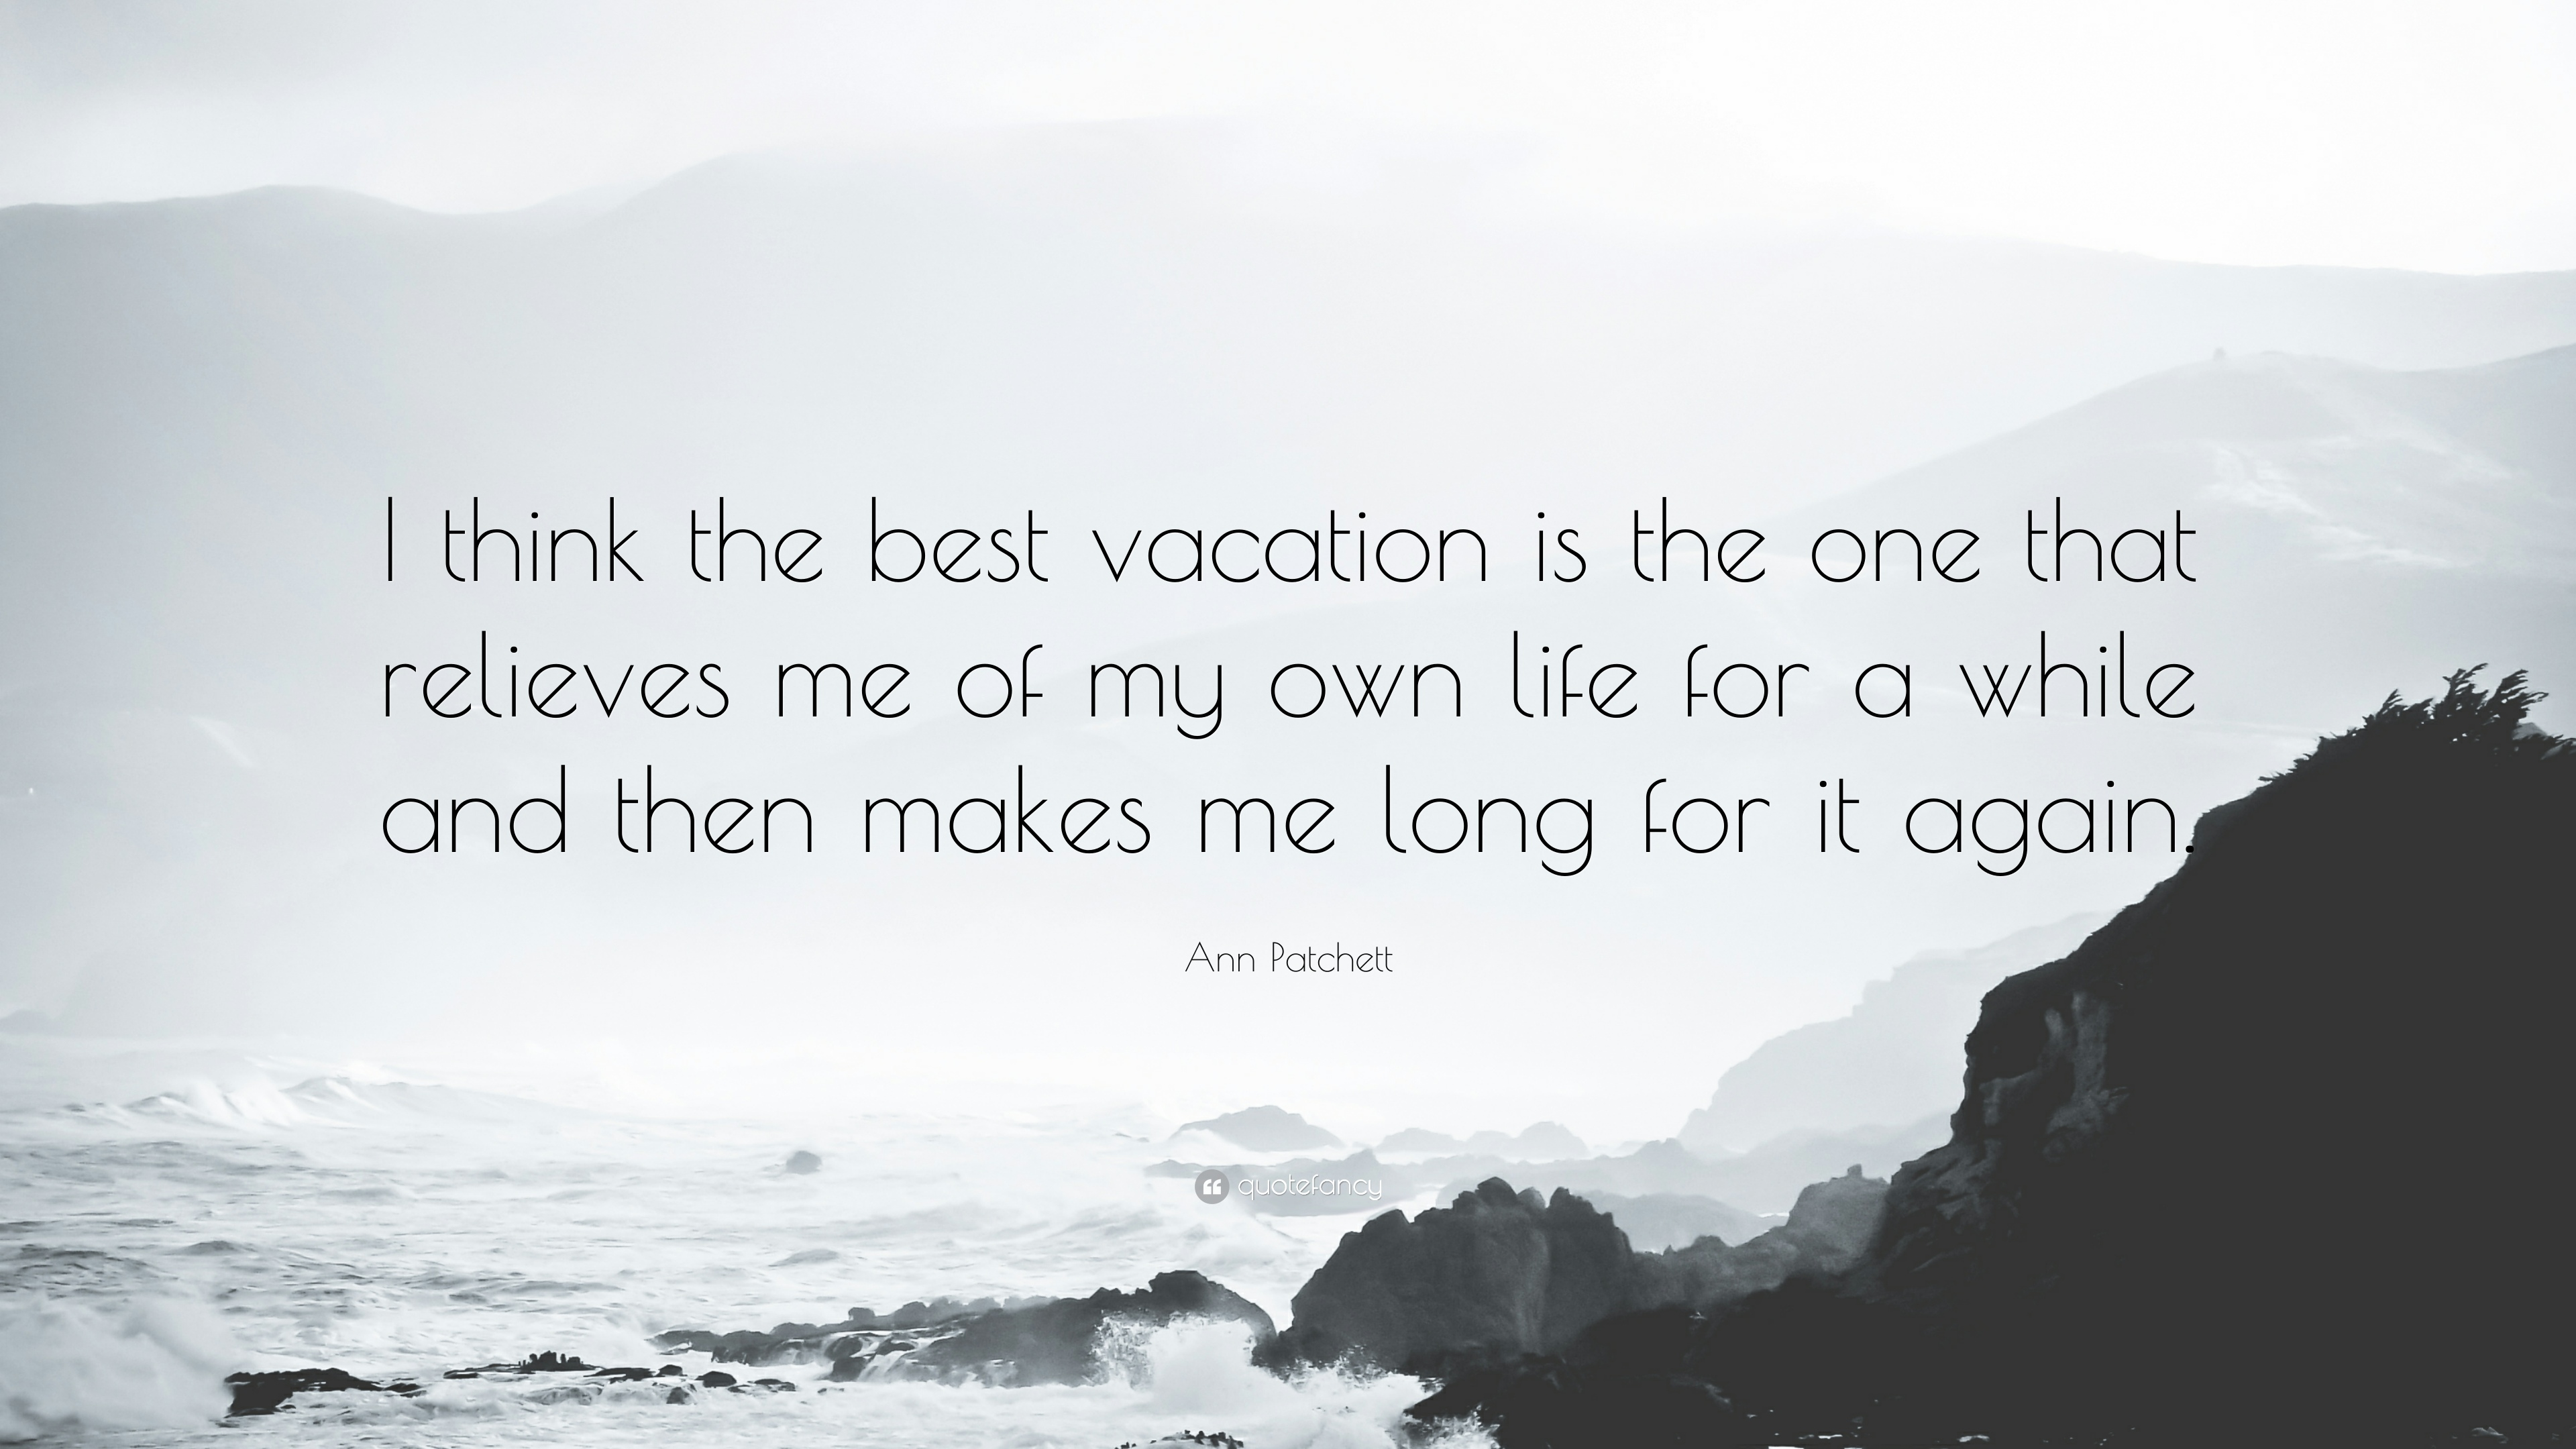 Ann Patchett Quote I Think The Best Vacation Is One That Relieves Me